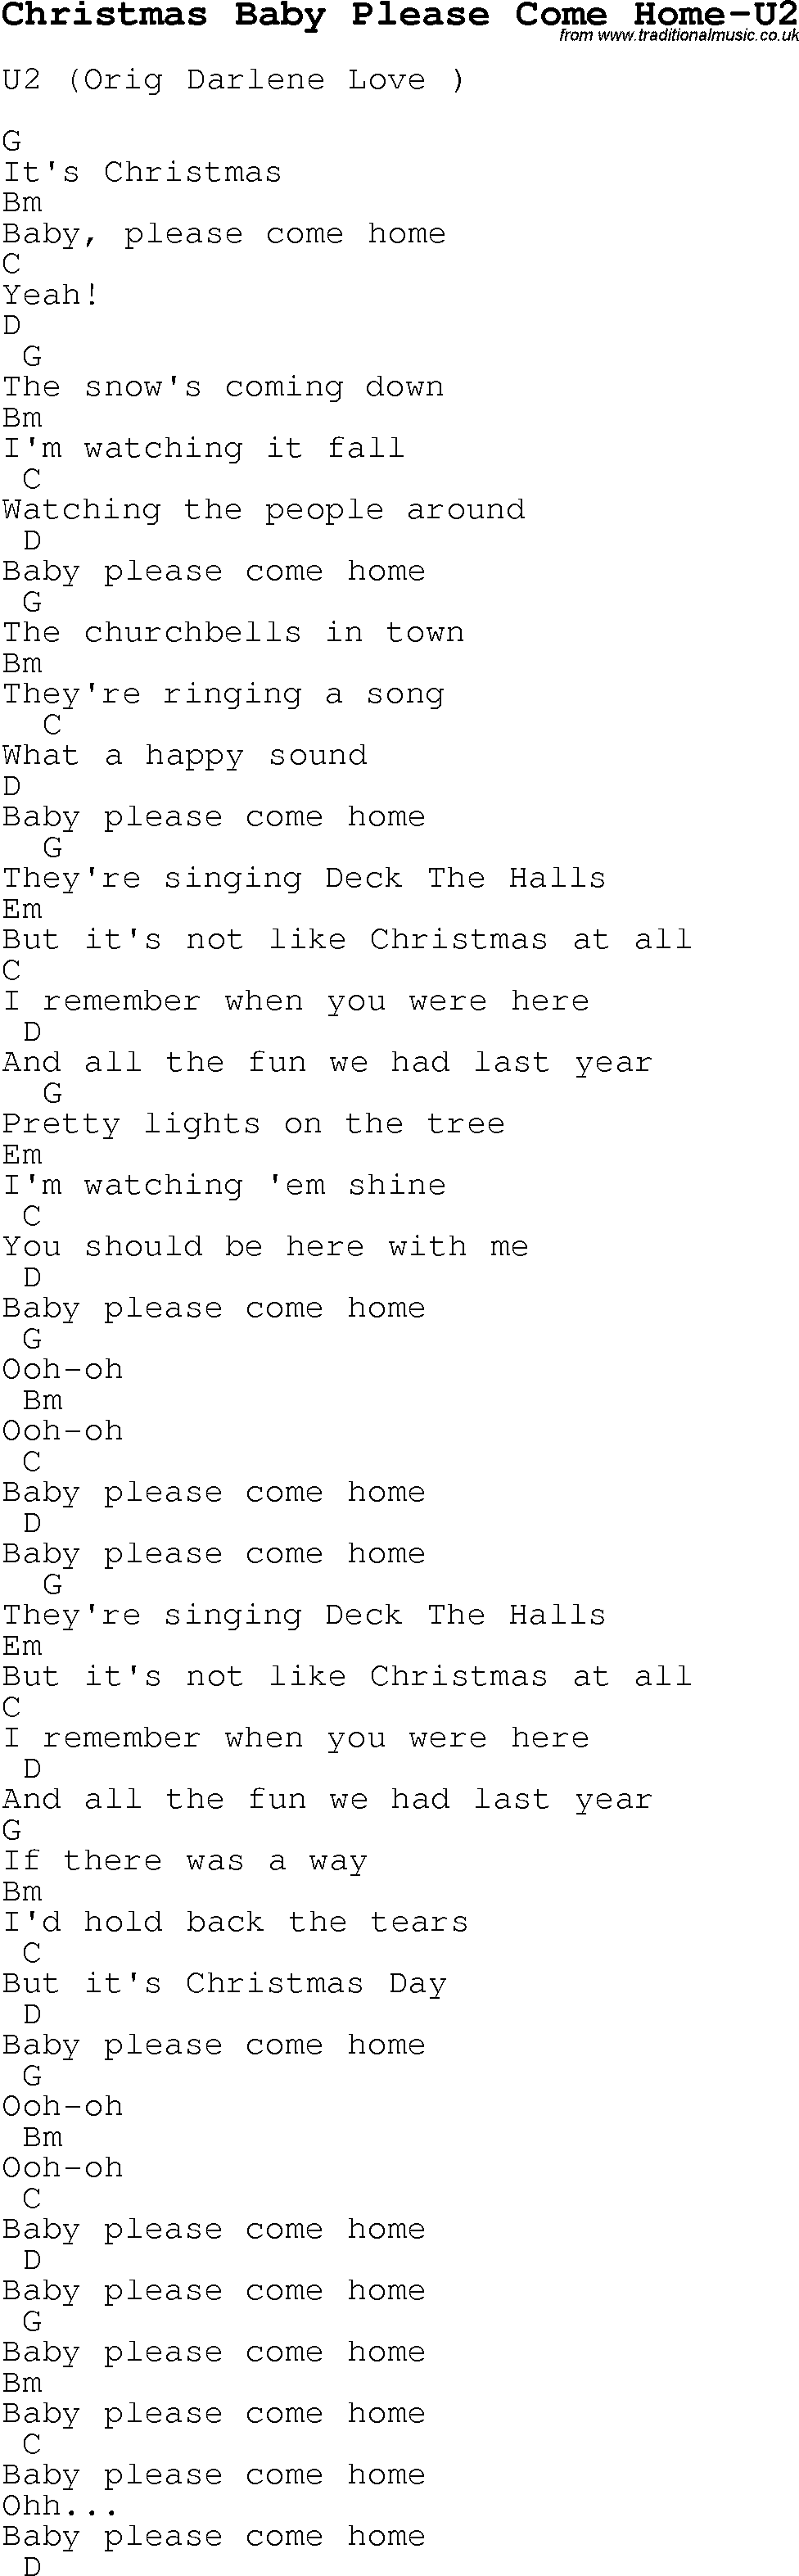 Christmas Carol/Song lyrics with chords for Christmas Baby Please ...